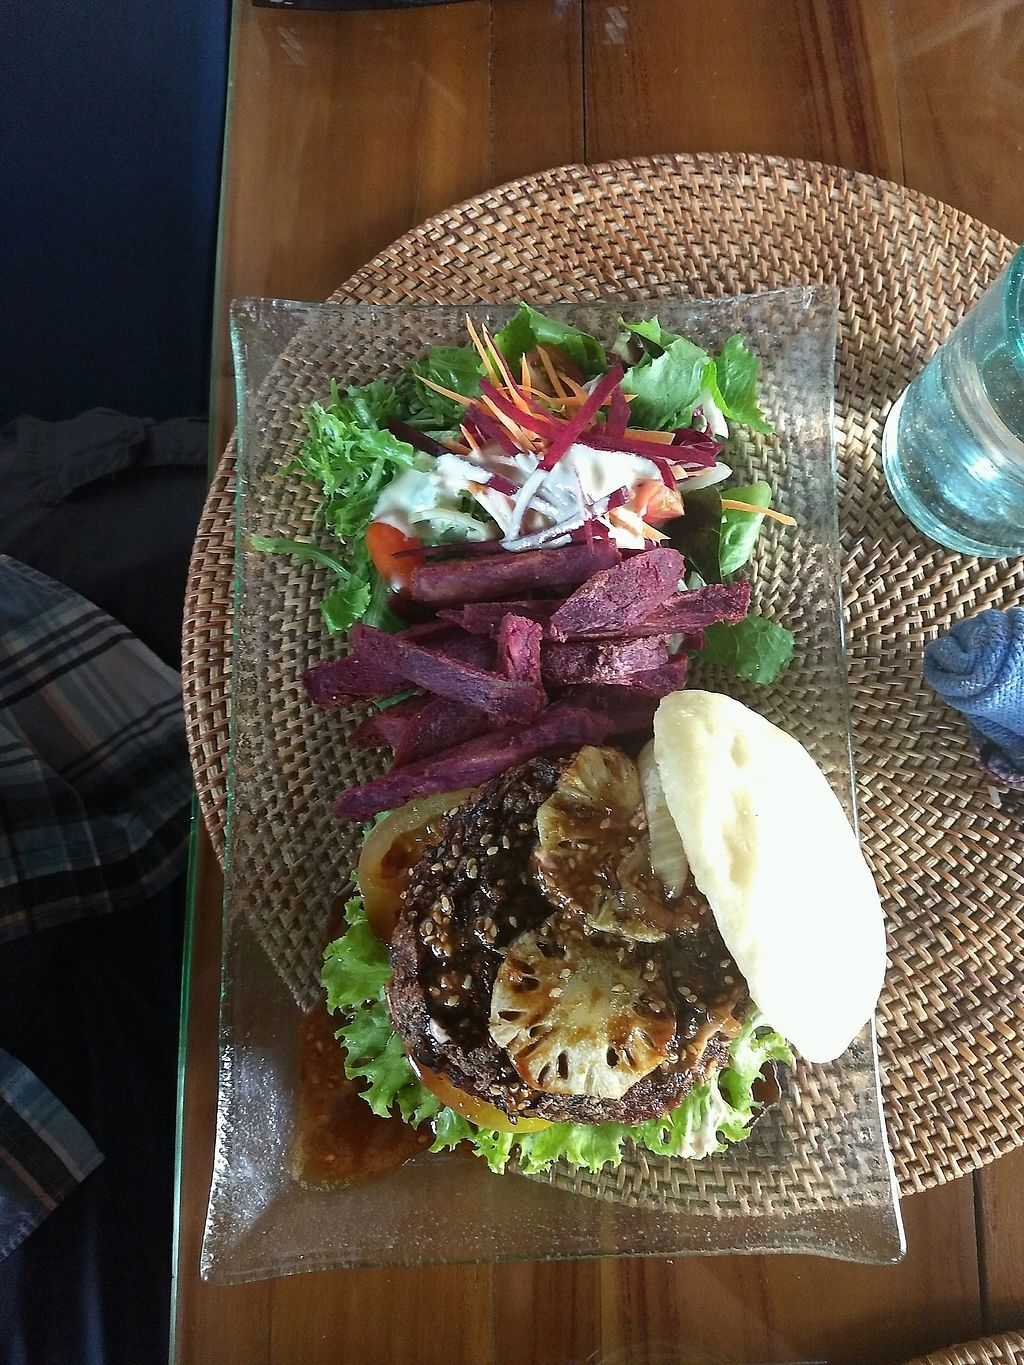 """Photo of Sage  by <a href=""""/members/profile/CatD"""">CatD</a> <br/>burger - delicious! <br/> February 14, 2018  - <a href='/contact/abuse/image/67565/359178'>Report</a>"""